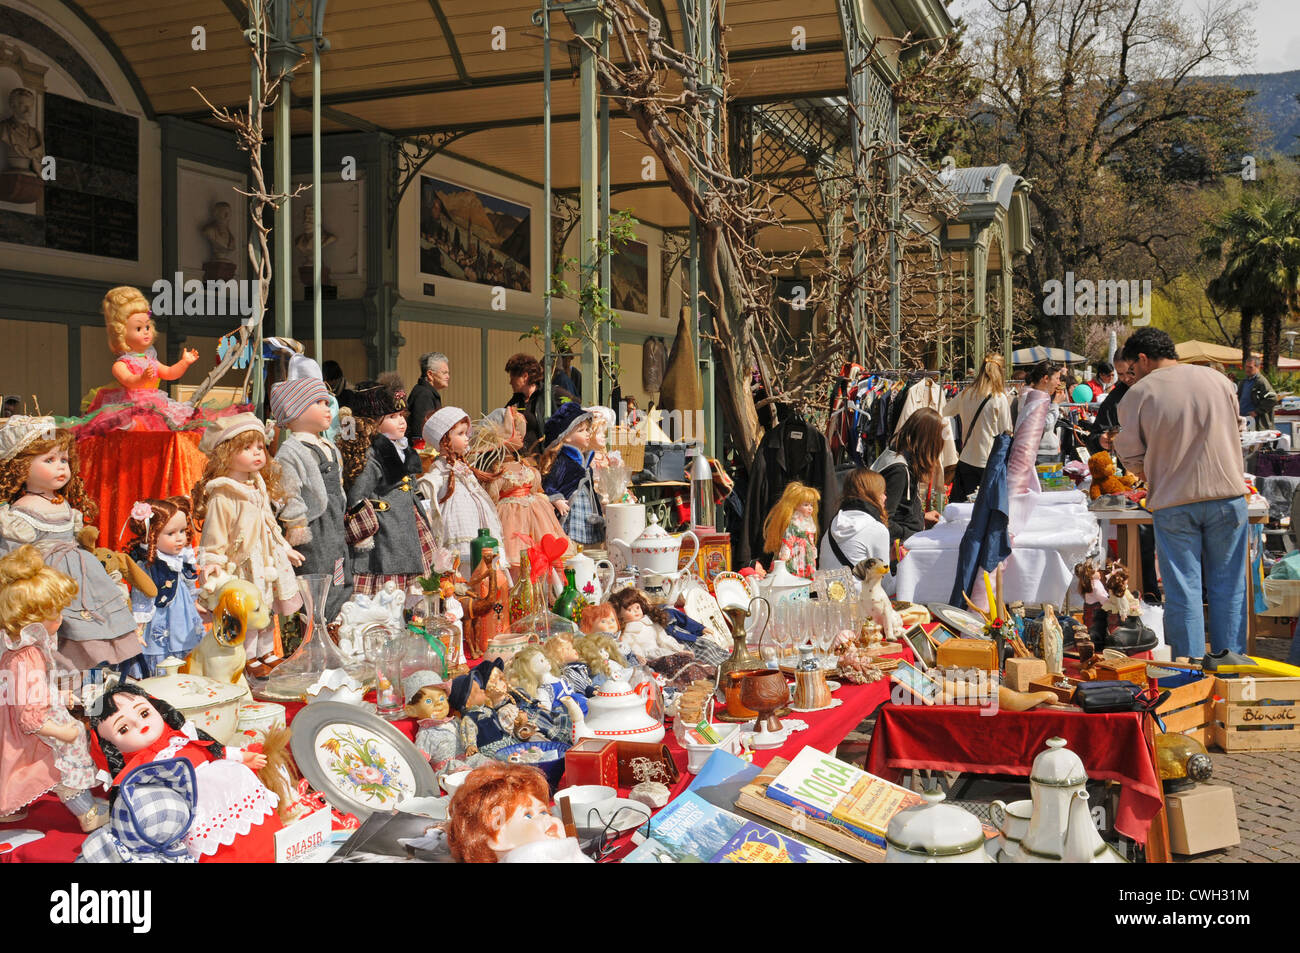 The Flea Market at the Winter-promenade at Meran in Italy - Stock Image